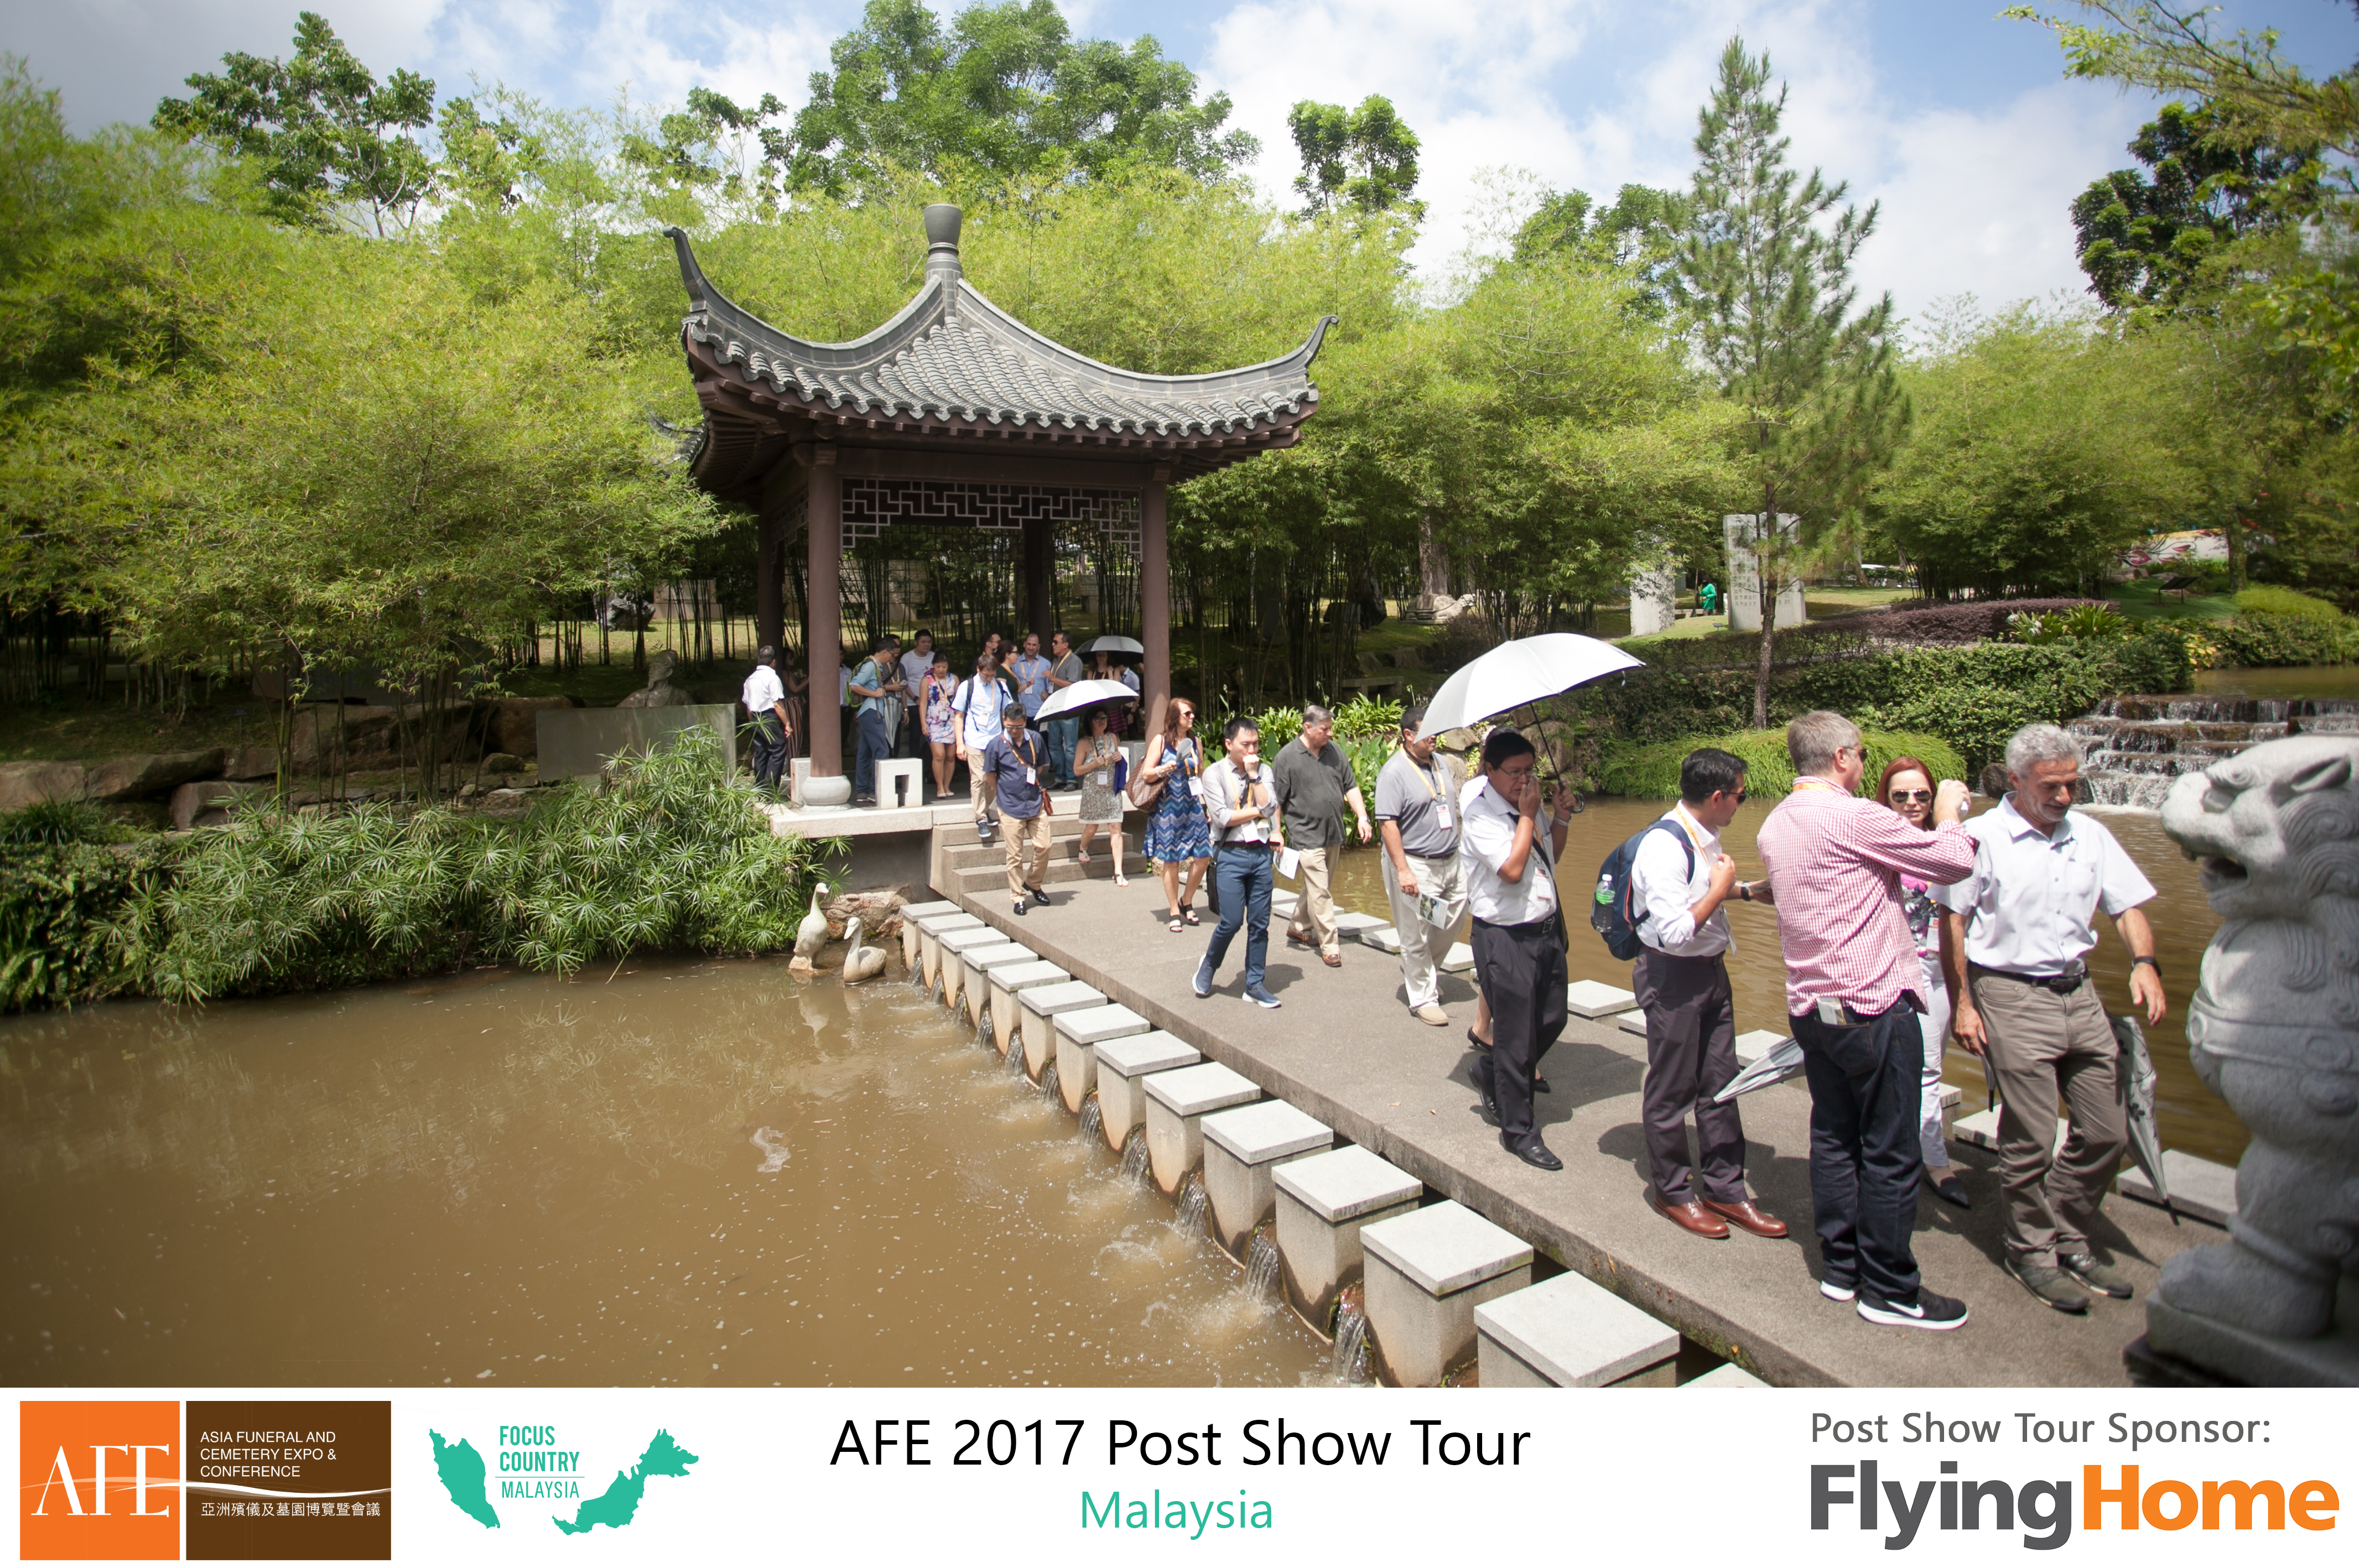 AFE Post Show Tour 2017 Day 2 - 08